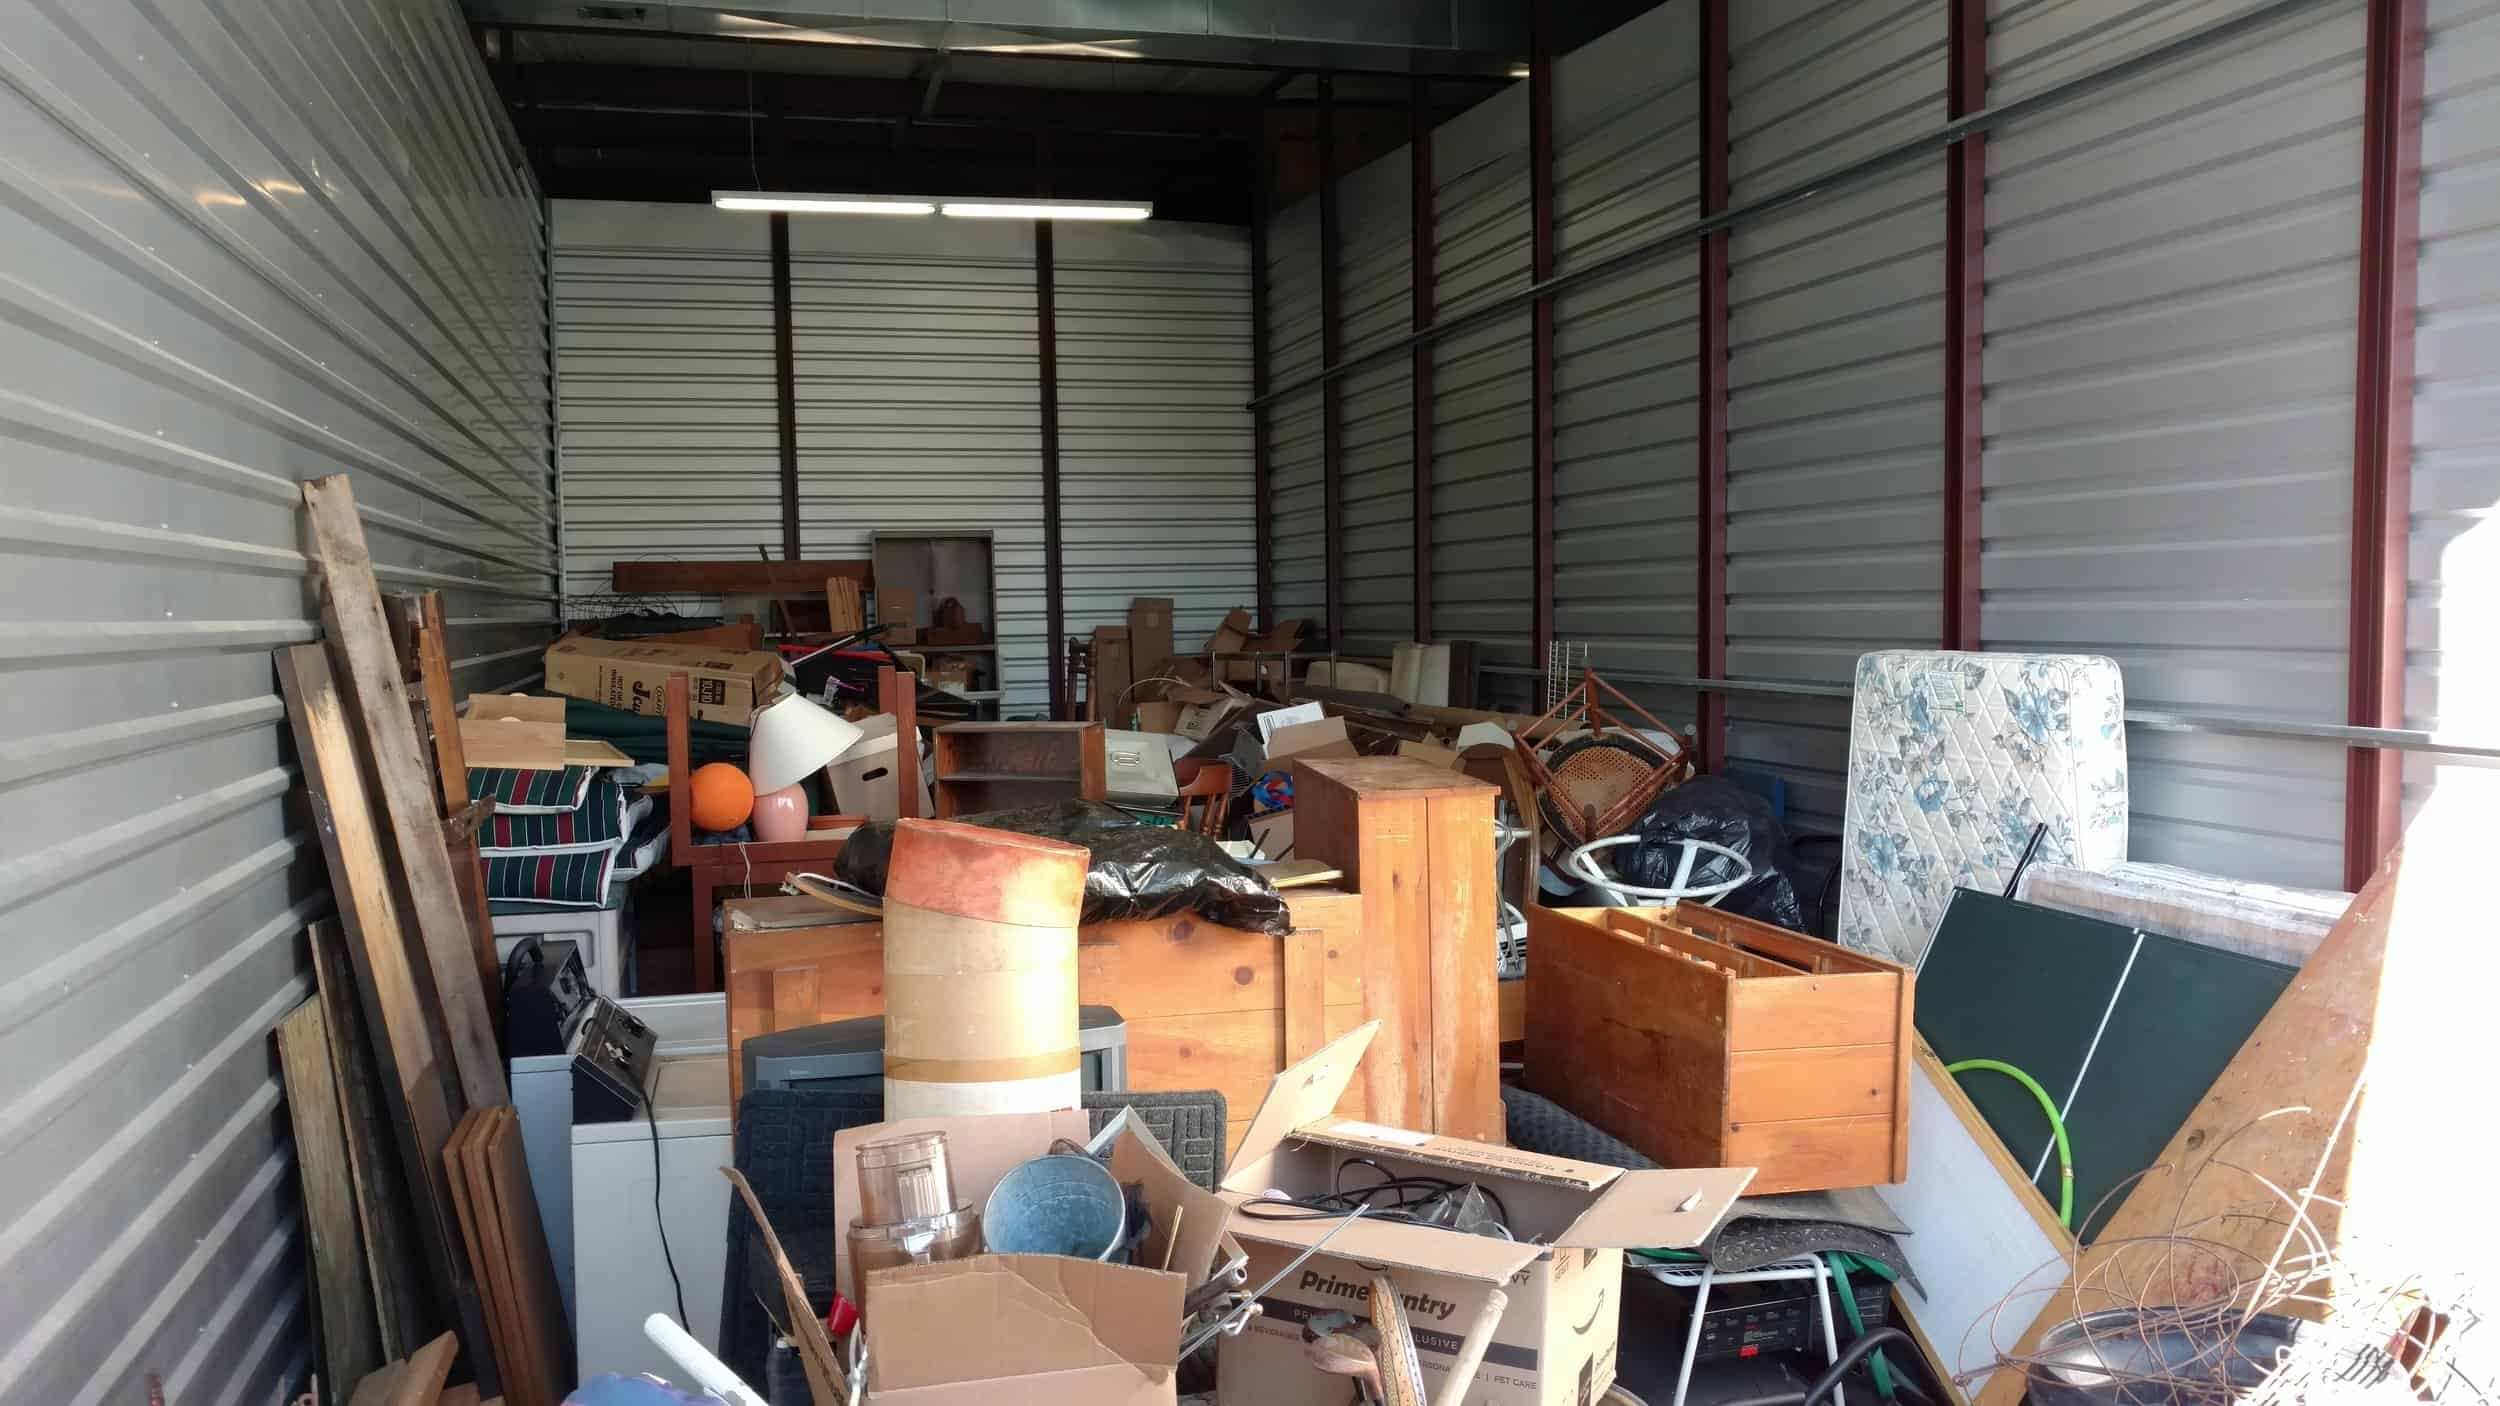 Commercial Junk Removal: Trusting the Pros to Help Eliminate Old Equipment and Furniture